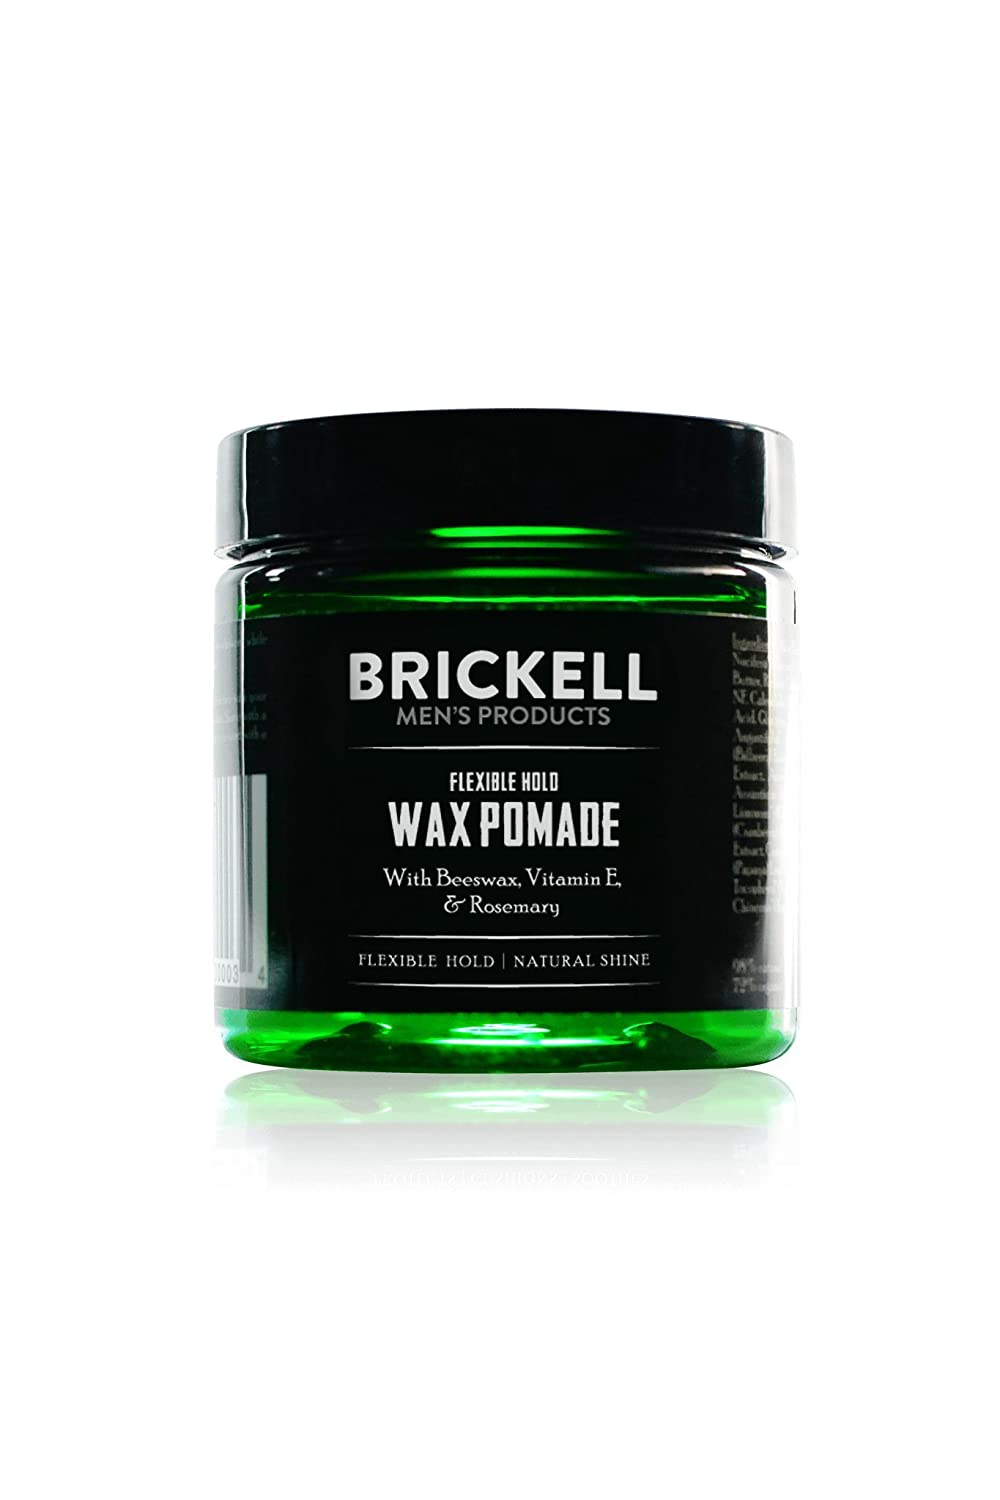 Brickell Men's Flexible Hold Wax Pomade for Men – 2 oz – Natural & Organic Brickell Men's Products FPO134-W